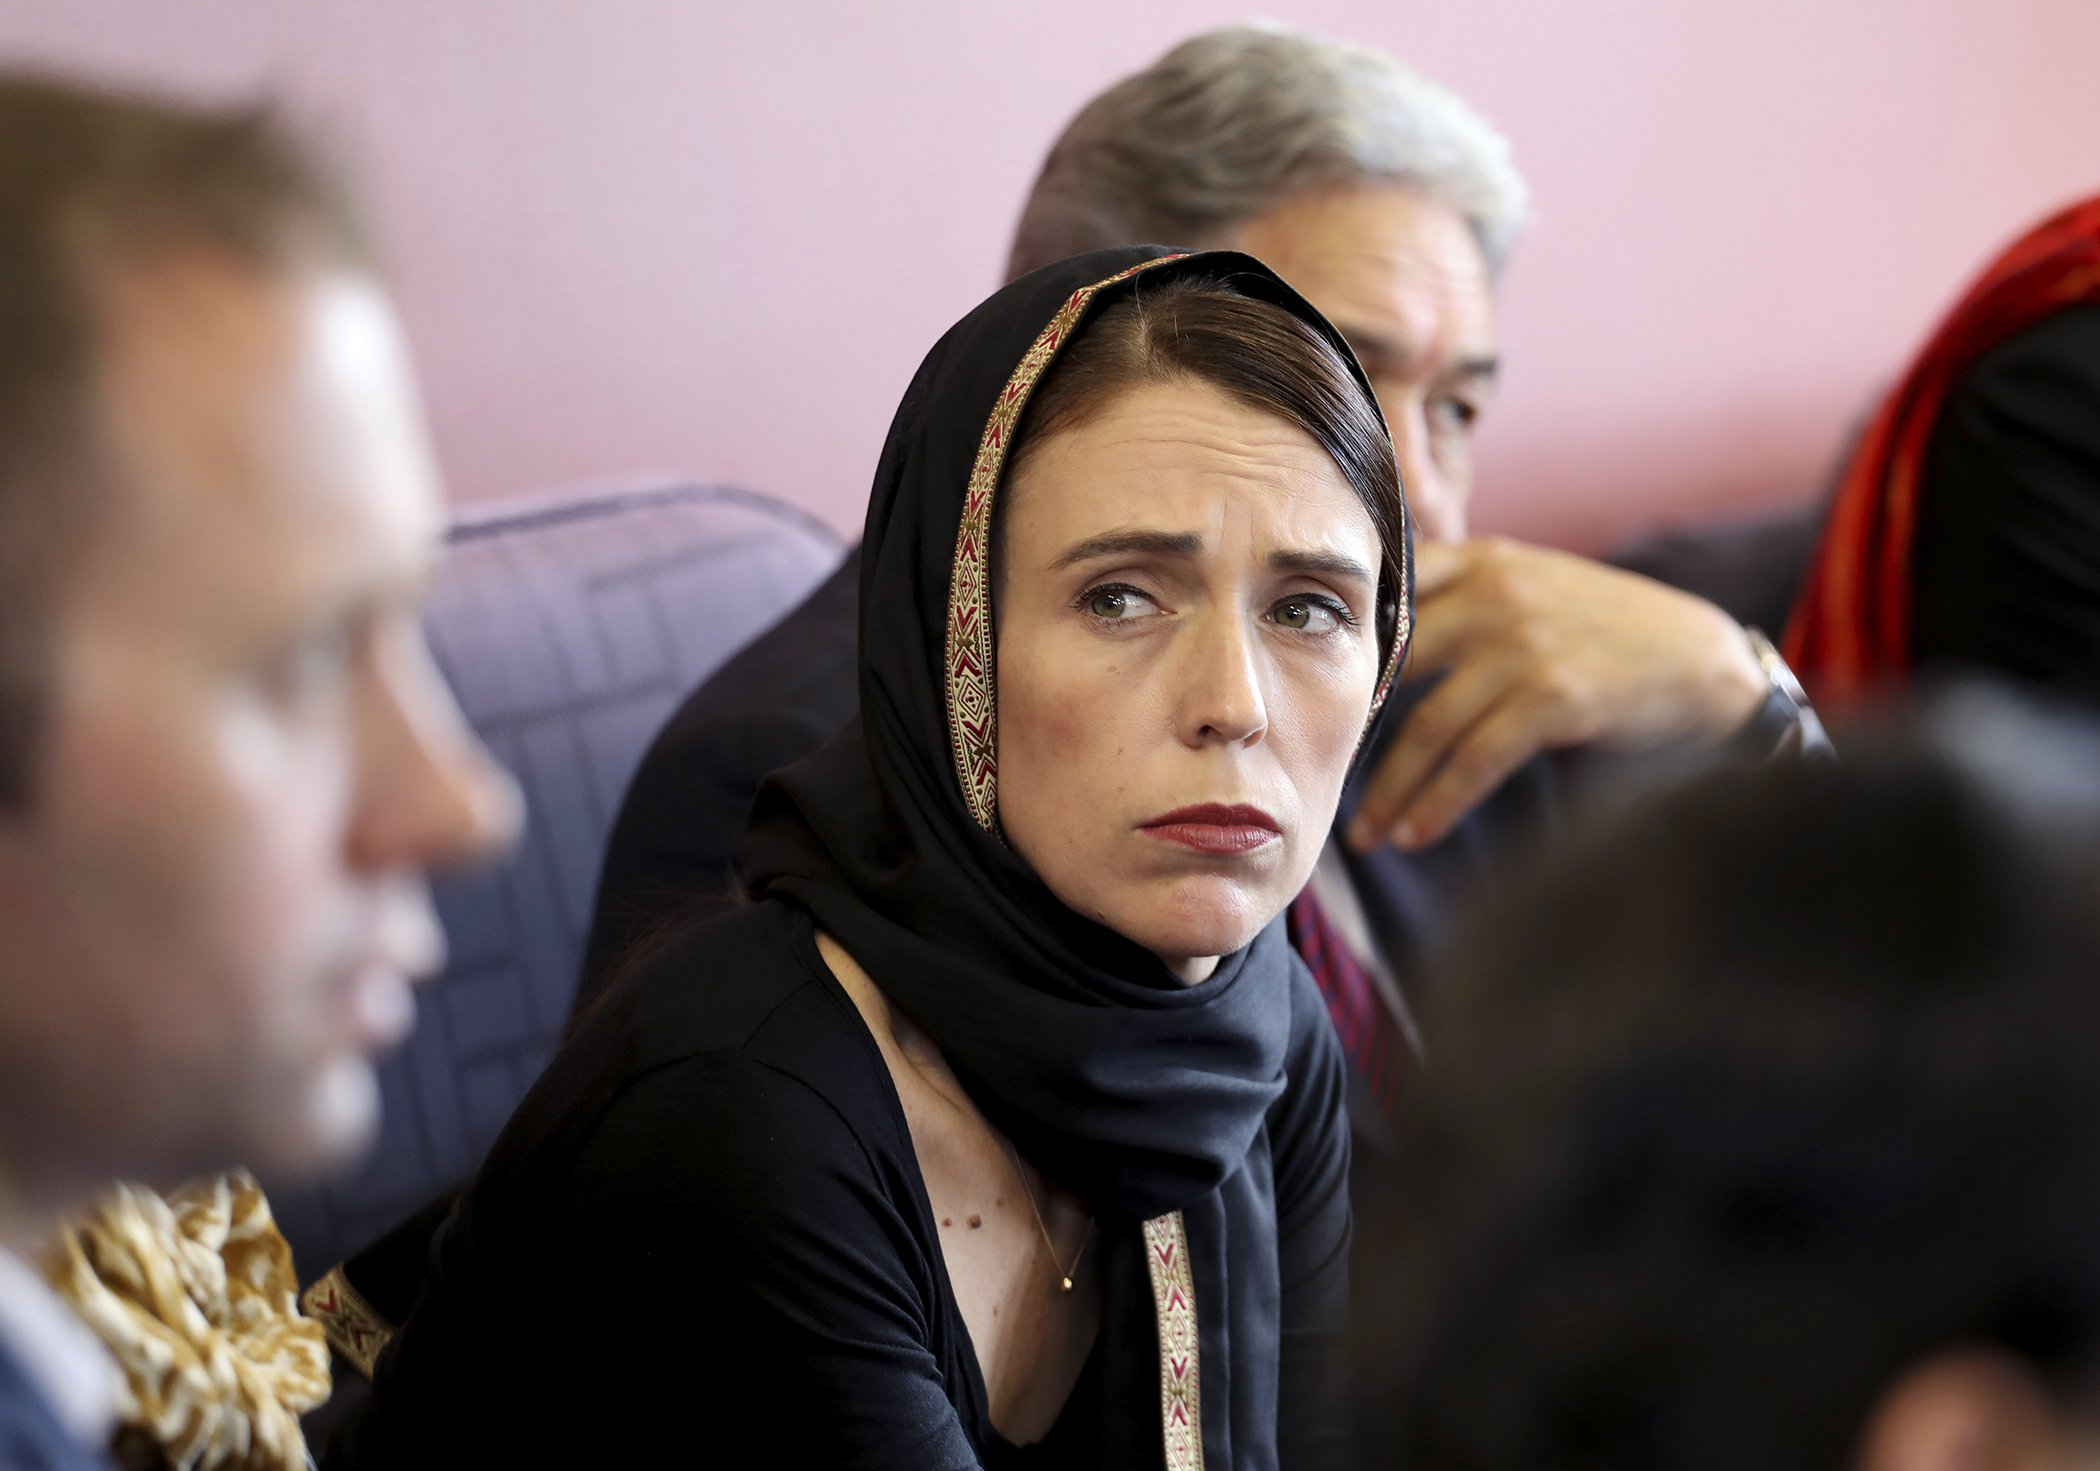 Jacinda Ardern-Hijab-Aftermath-NZ.jpg